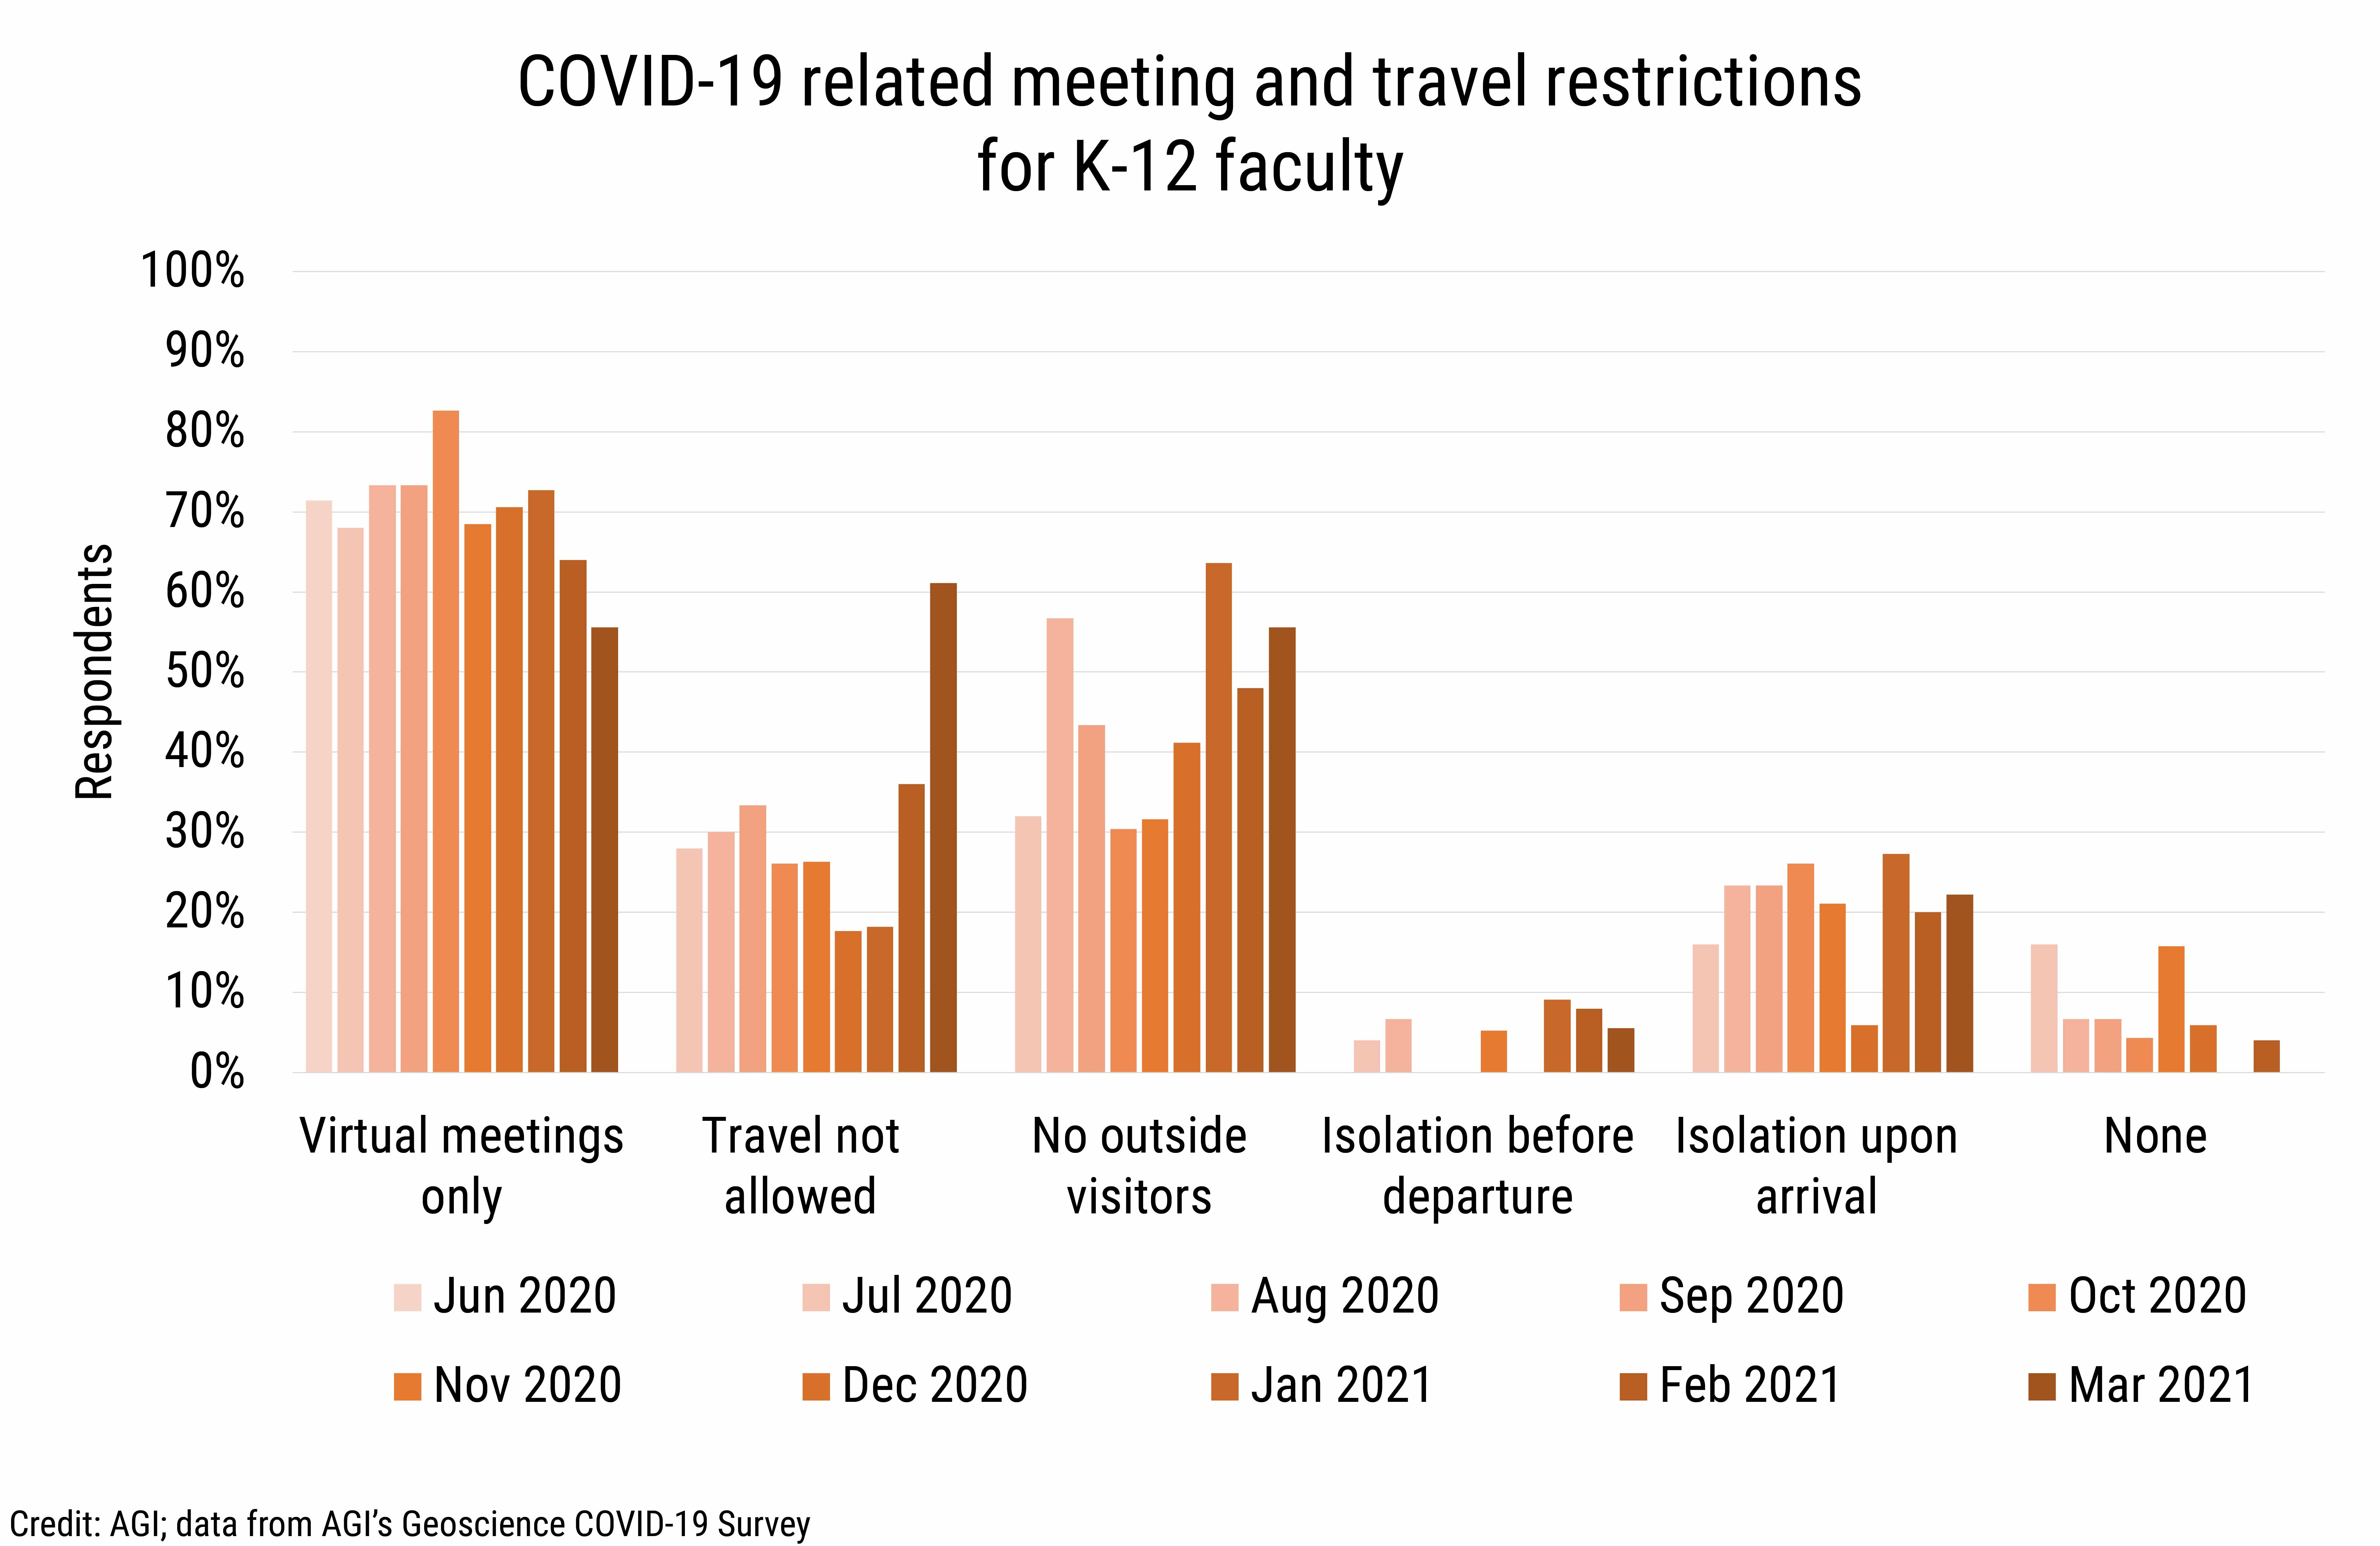 DB_2021-013 chart 06: COVID-19 related meeting and travel restrictions for K-12 faculty (Credit: AGI; data from AGI's Geoscience COVID-19 Survey)